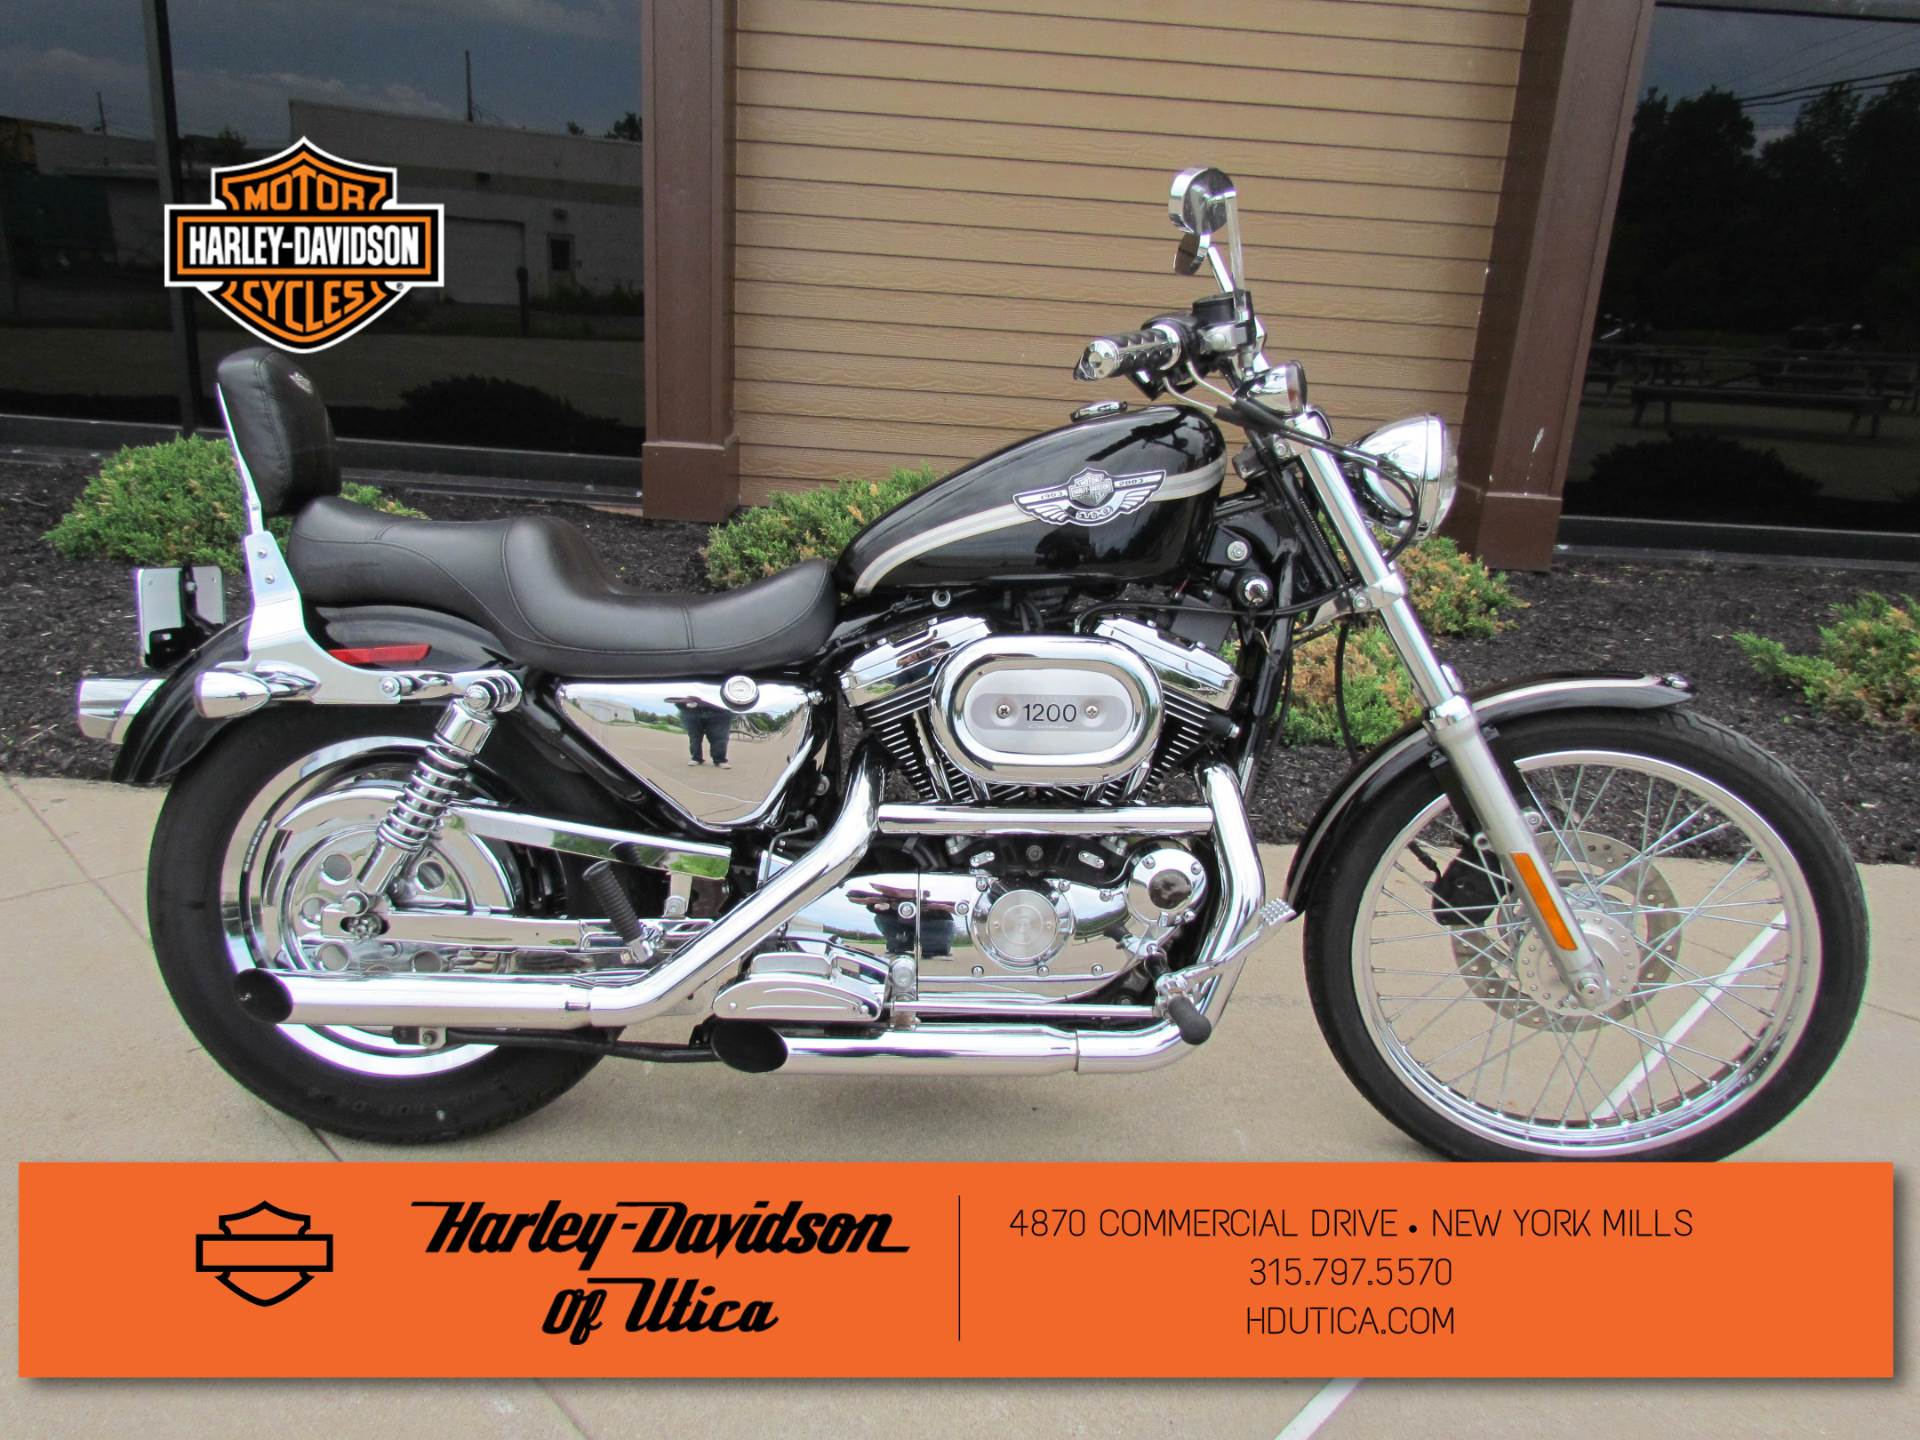 2003 Harley-Davidson XL 1200C Sportster® 1200 Custom in New York Mills, New York - Photo 1